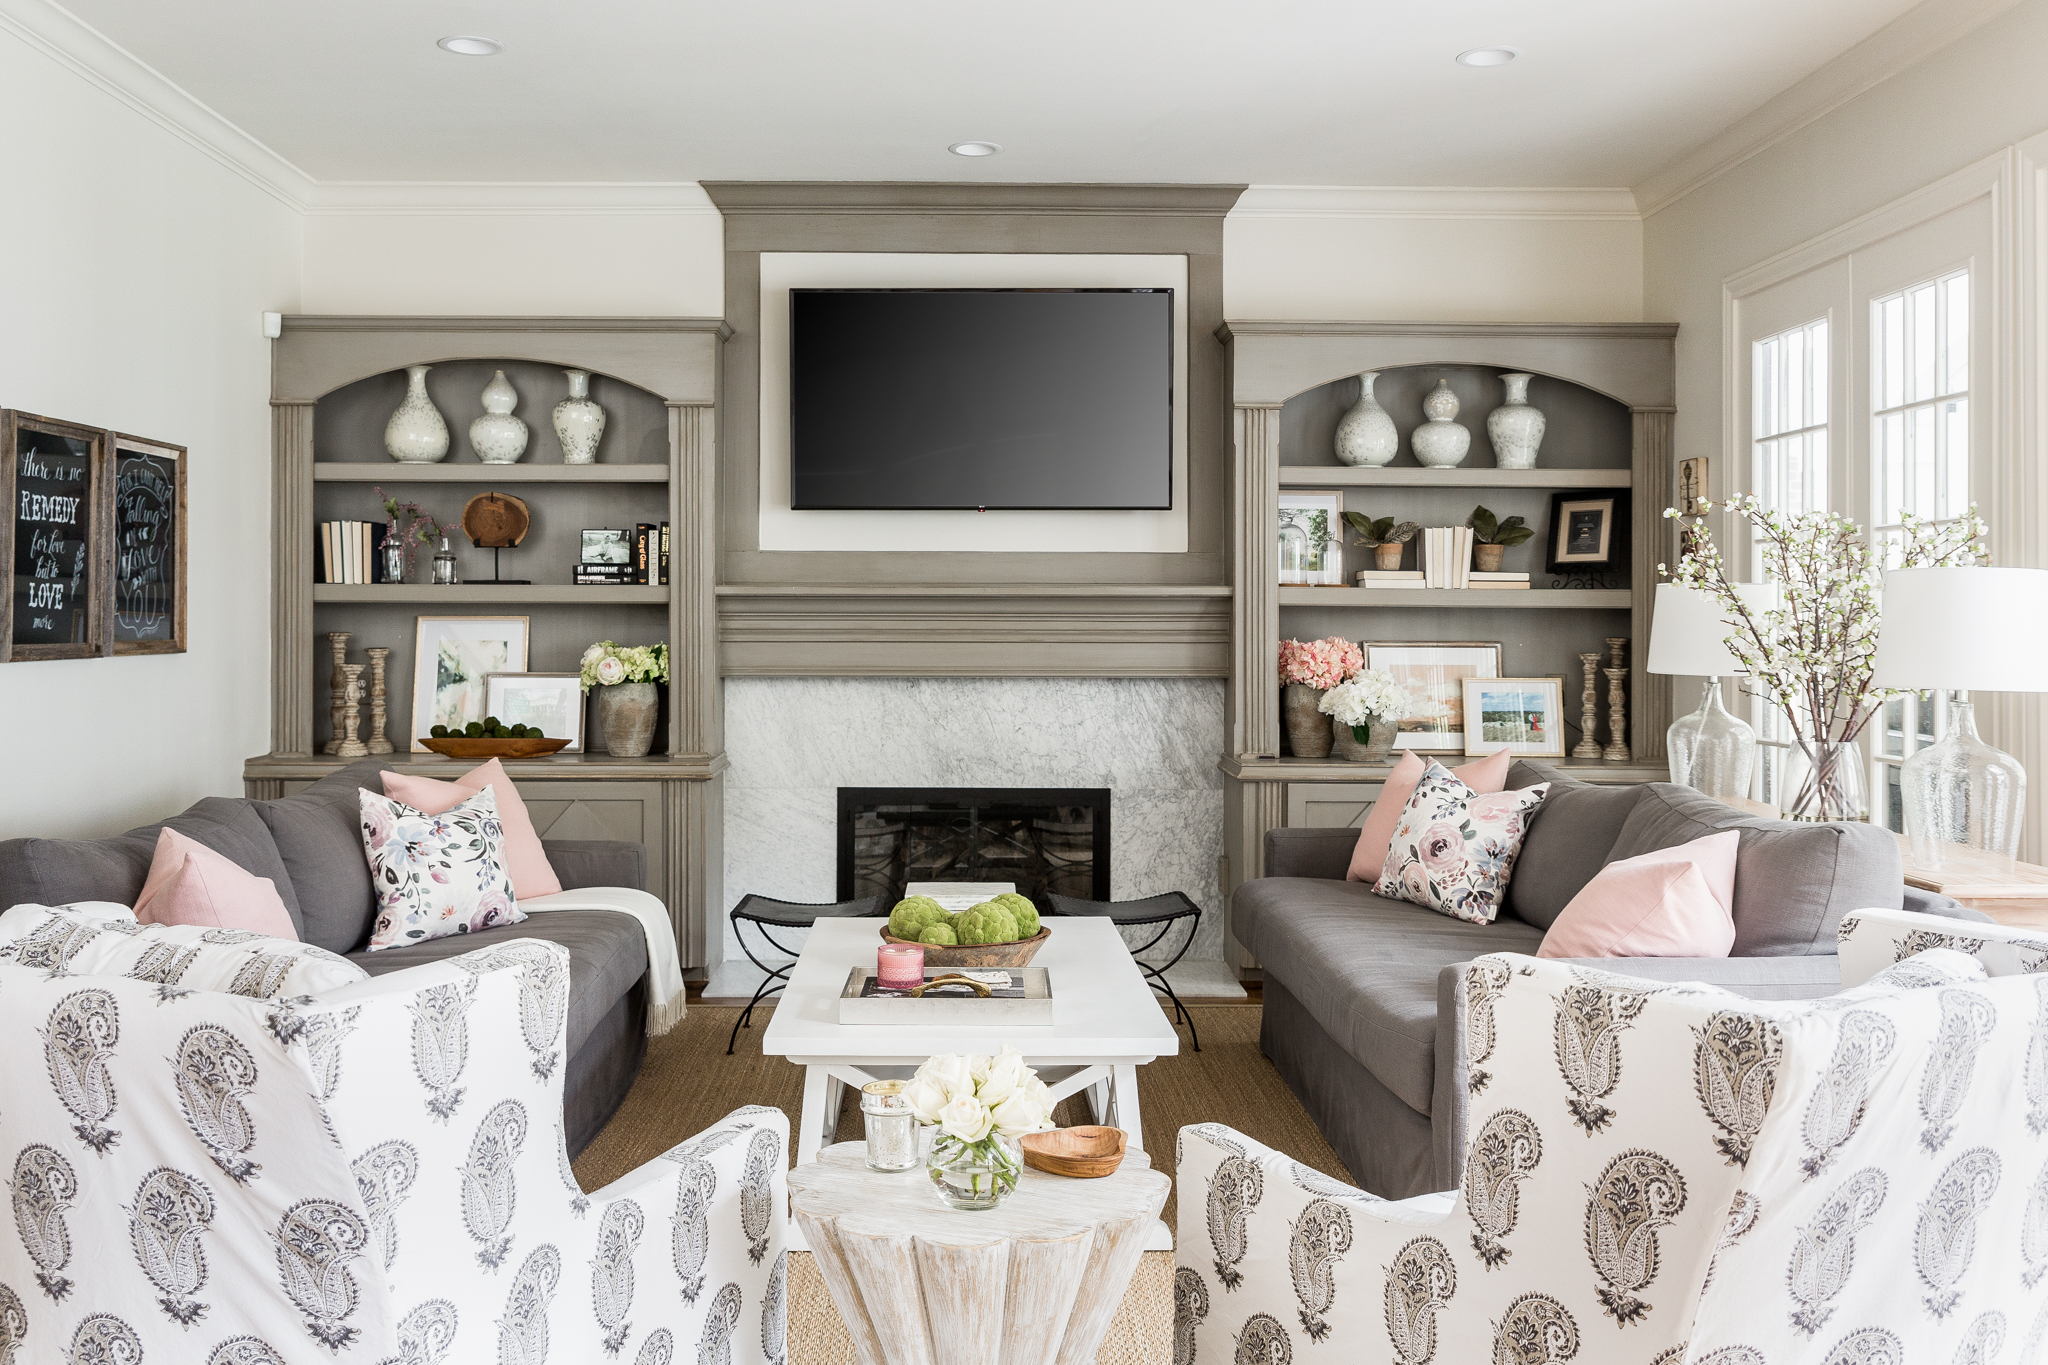 Bright Family Room with Two Gray Sofas and Patterned Swivel Chairs